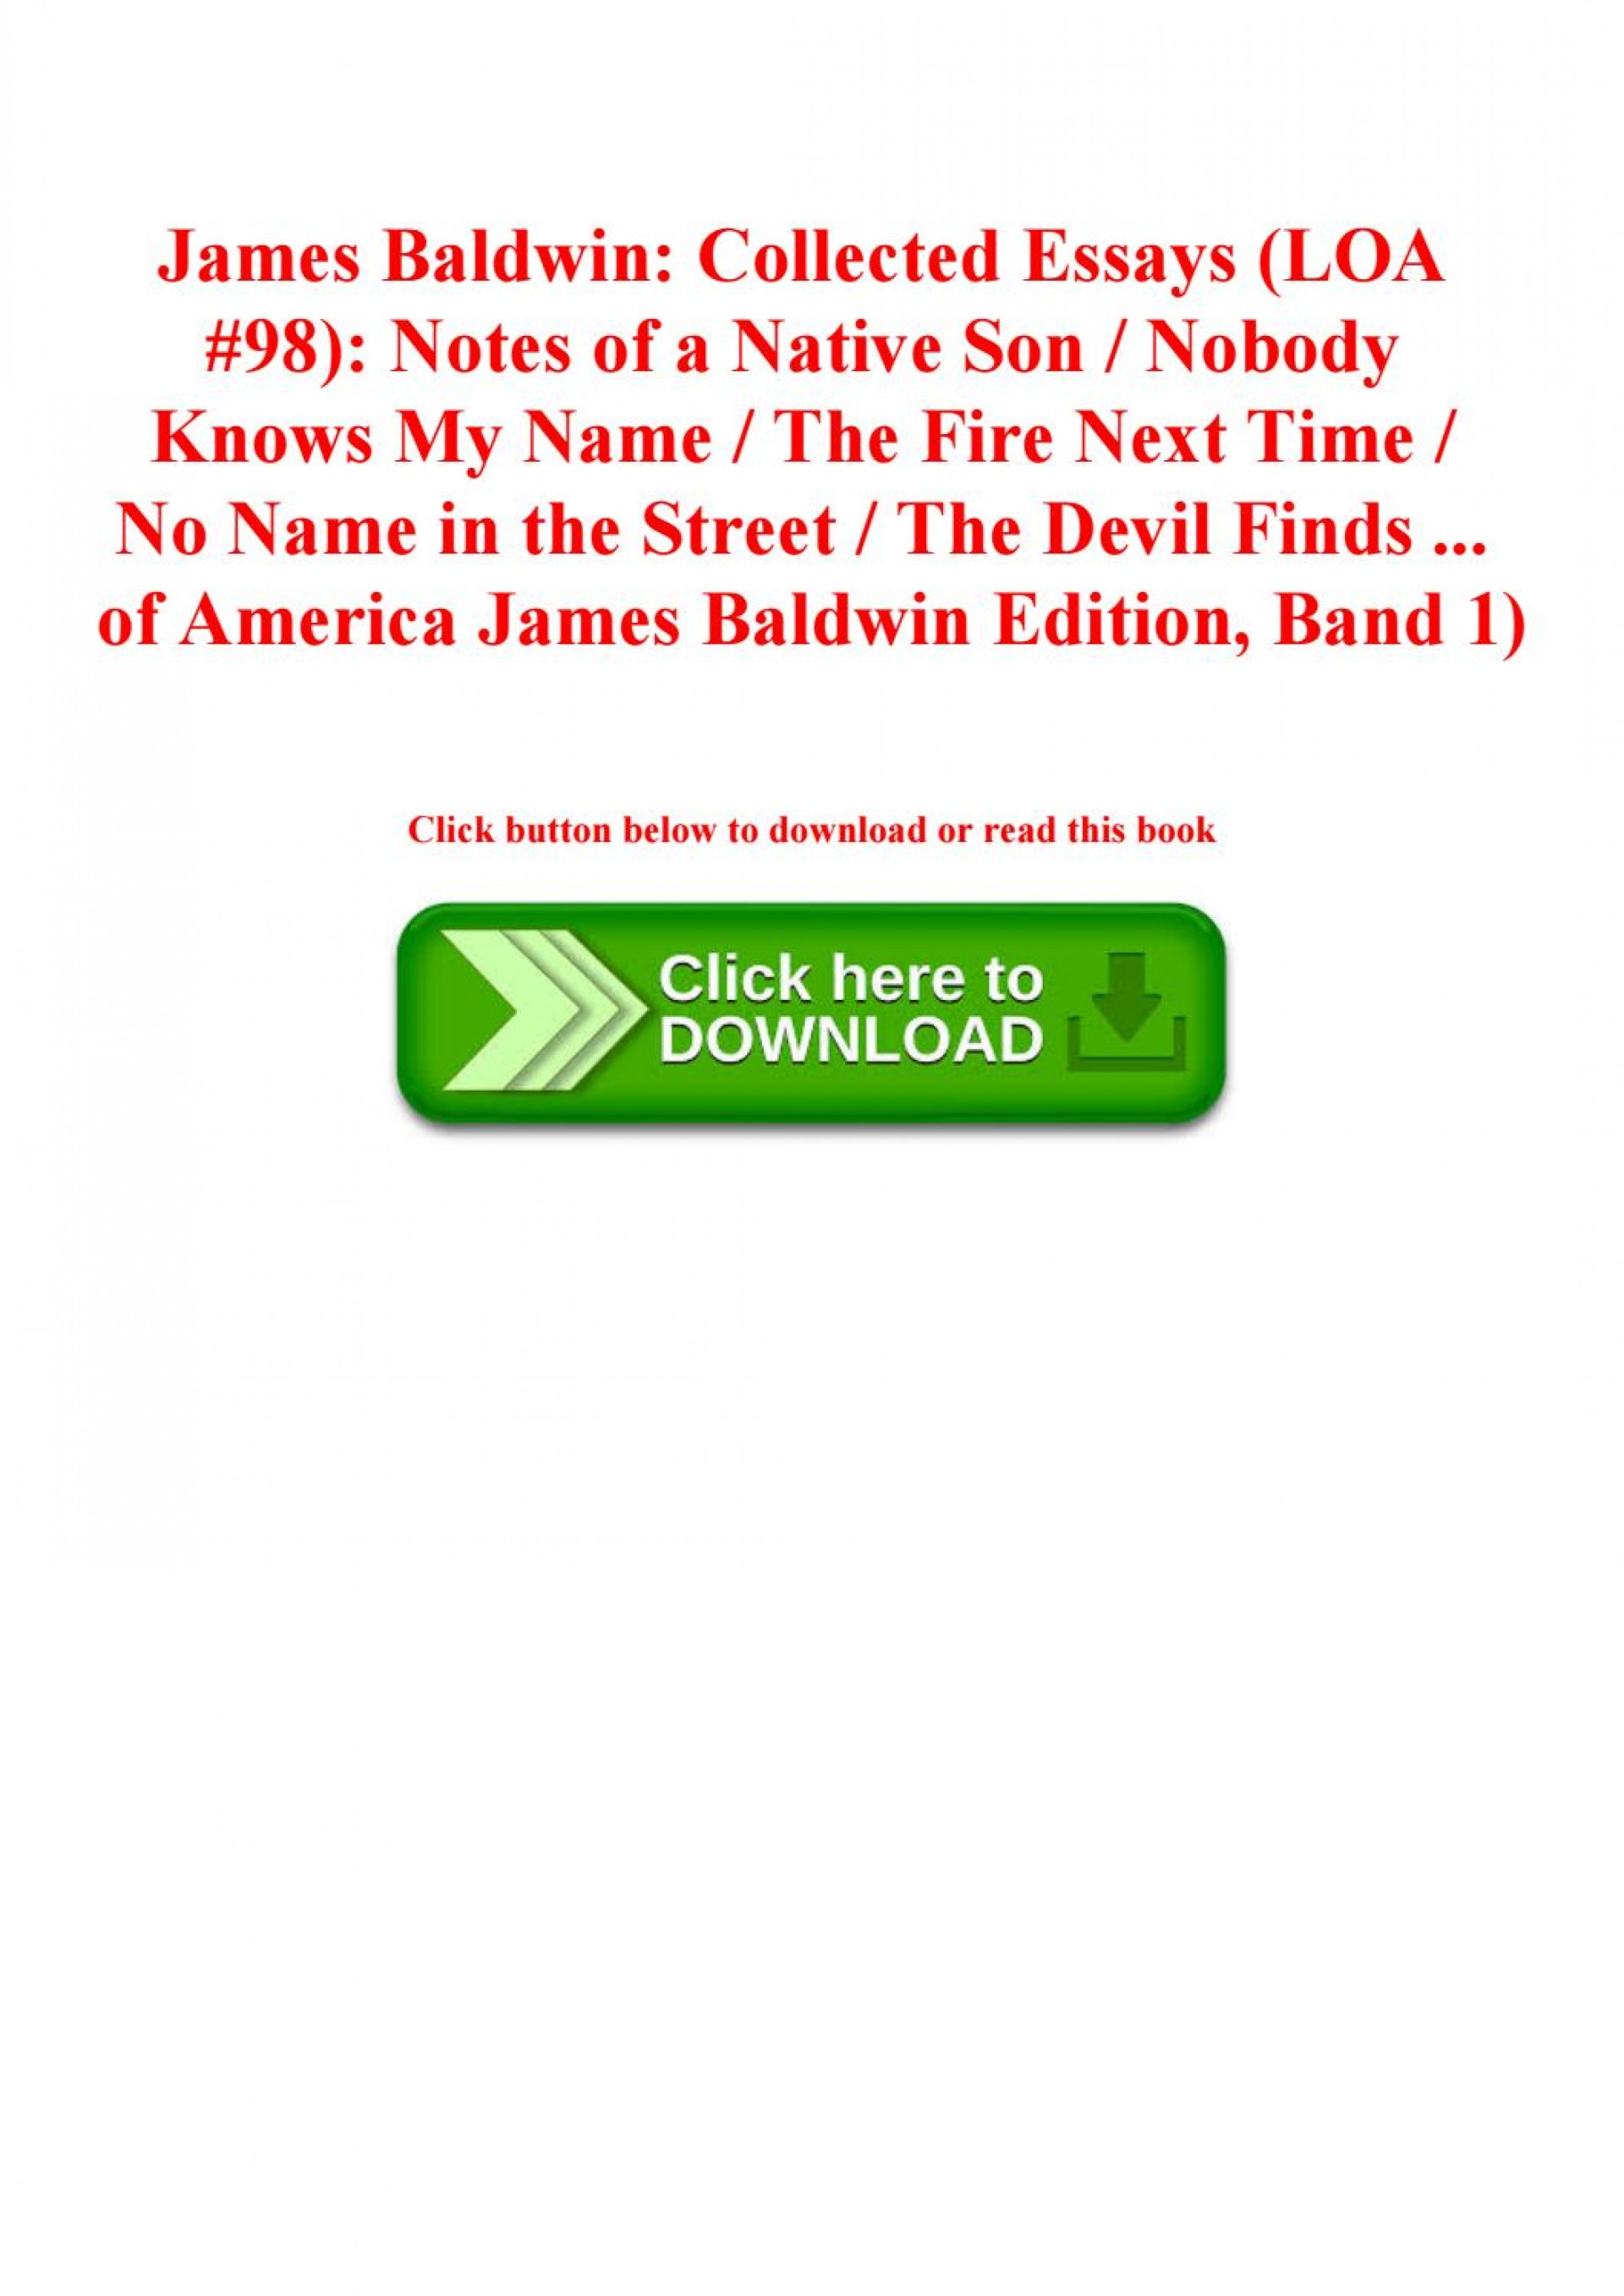 024 James Baldwin Collected Essays Essay Example Page 1 Wondrous Table Of Contents Ebook Google Books 1920